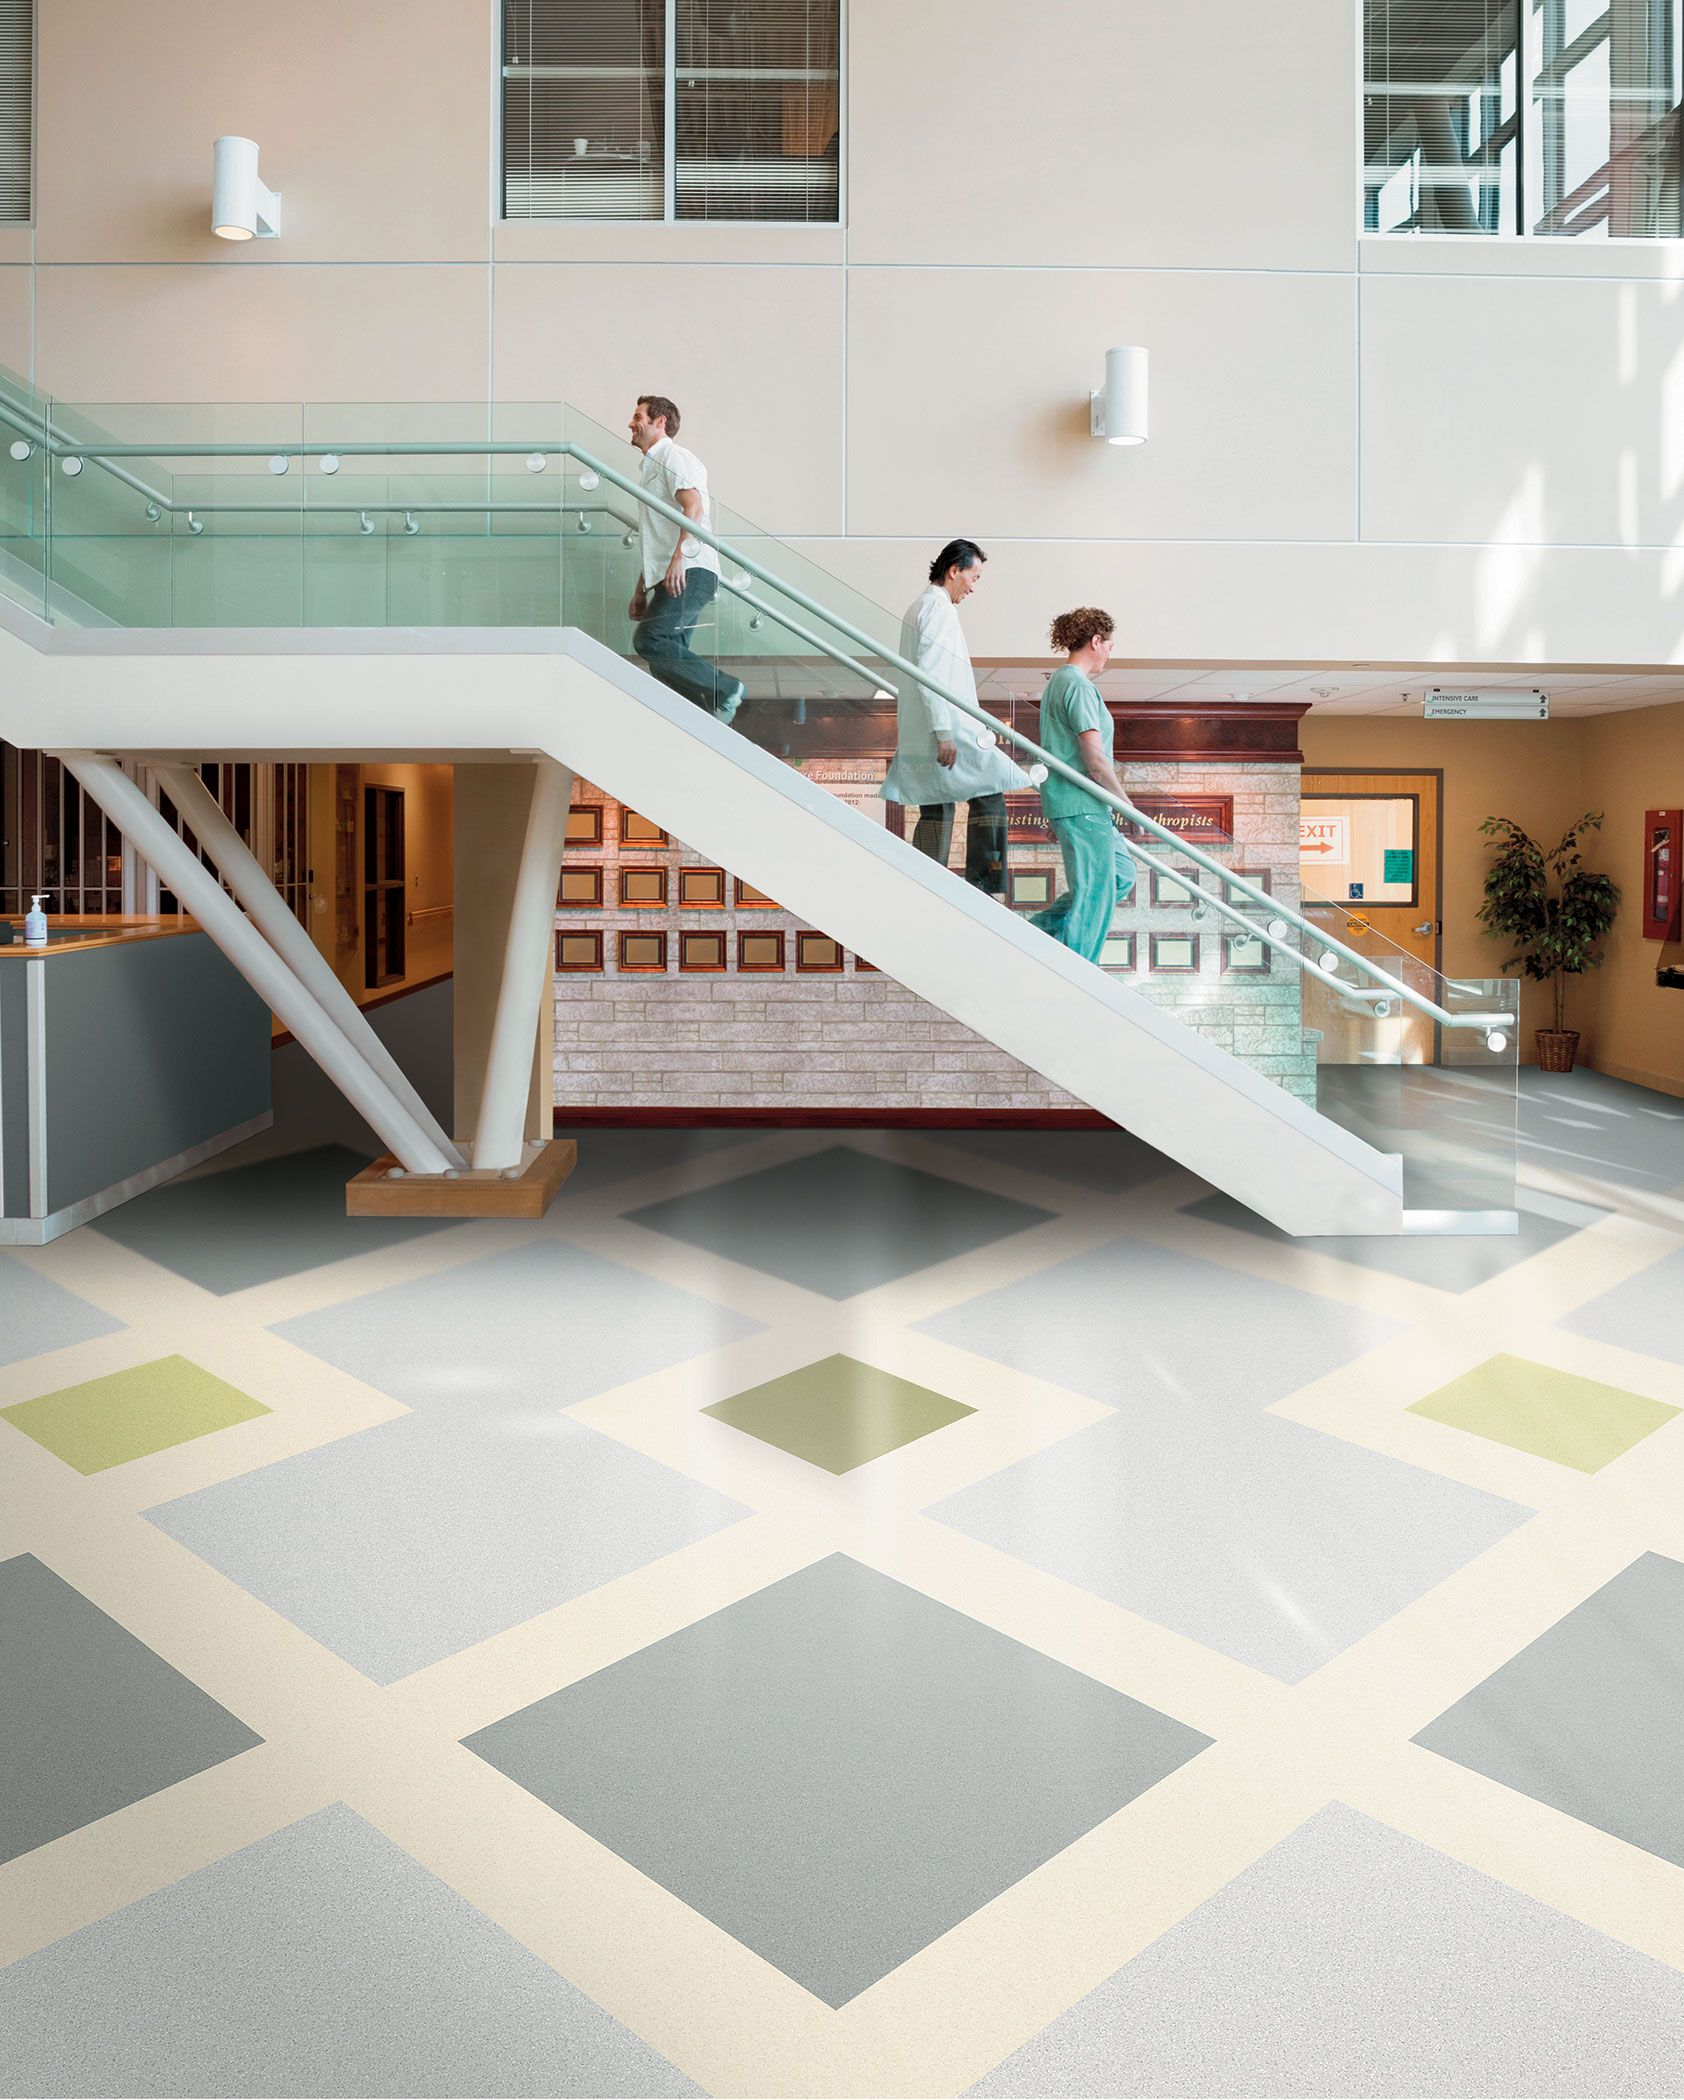 Melodia 20 homogeneous sheet tile flooring patterns solid color vinyl floor tiles with innovations and advancements in home design along with enlarging creativity and style dailygadgetfo Images